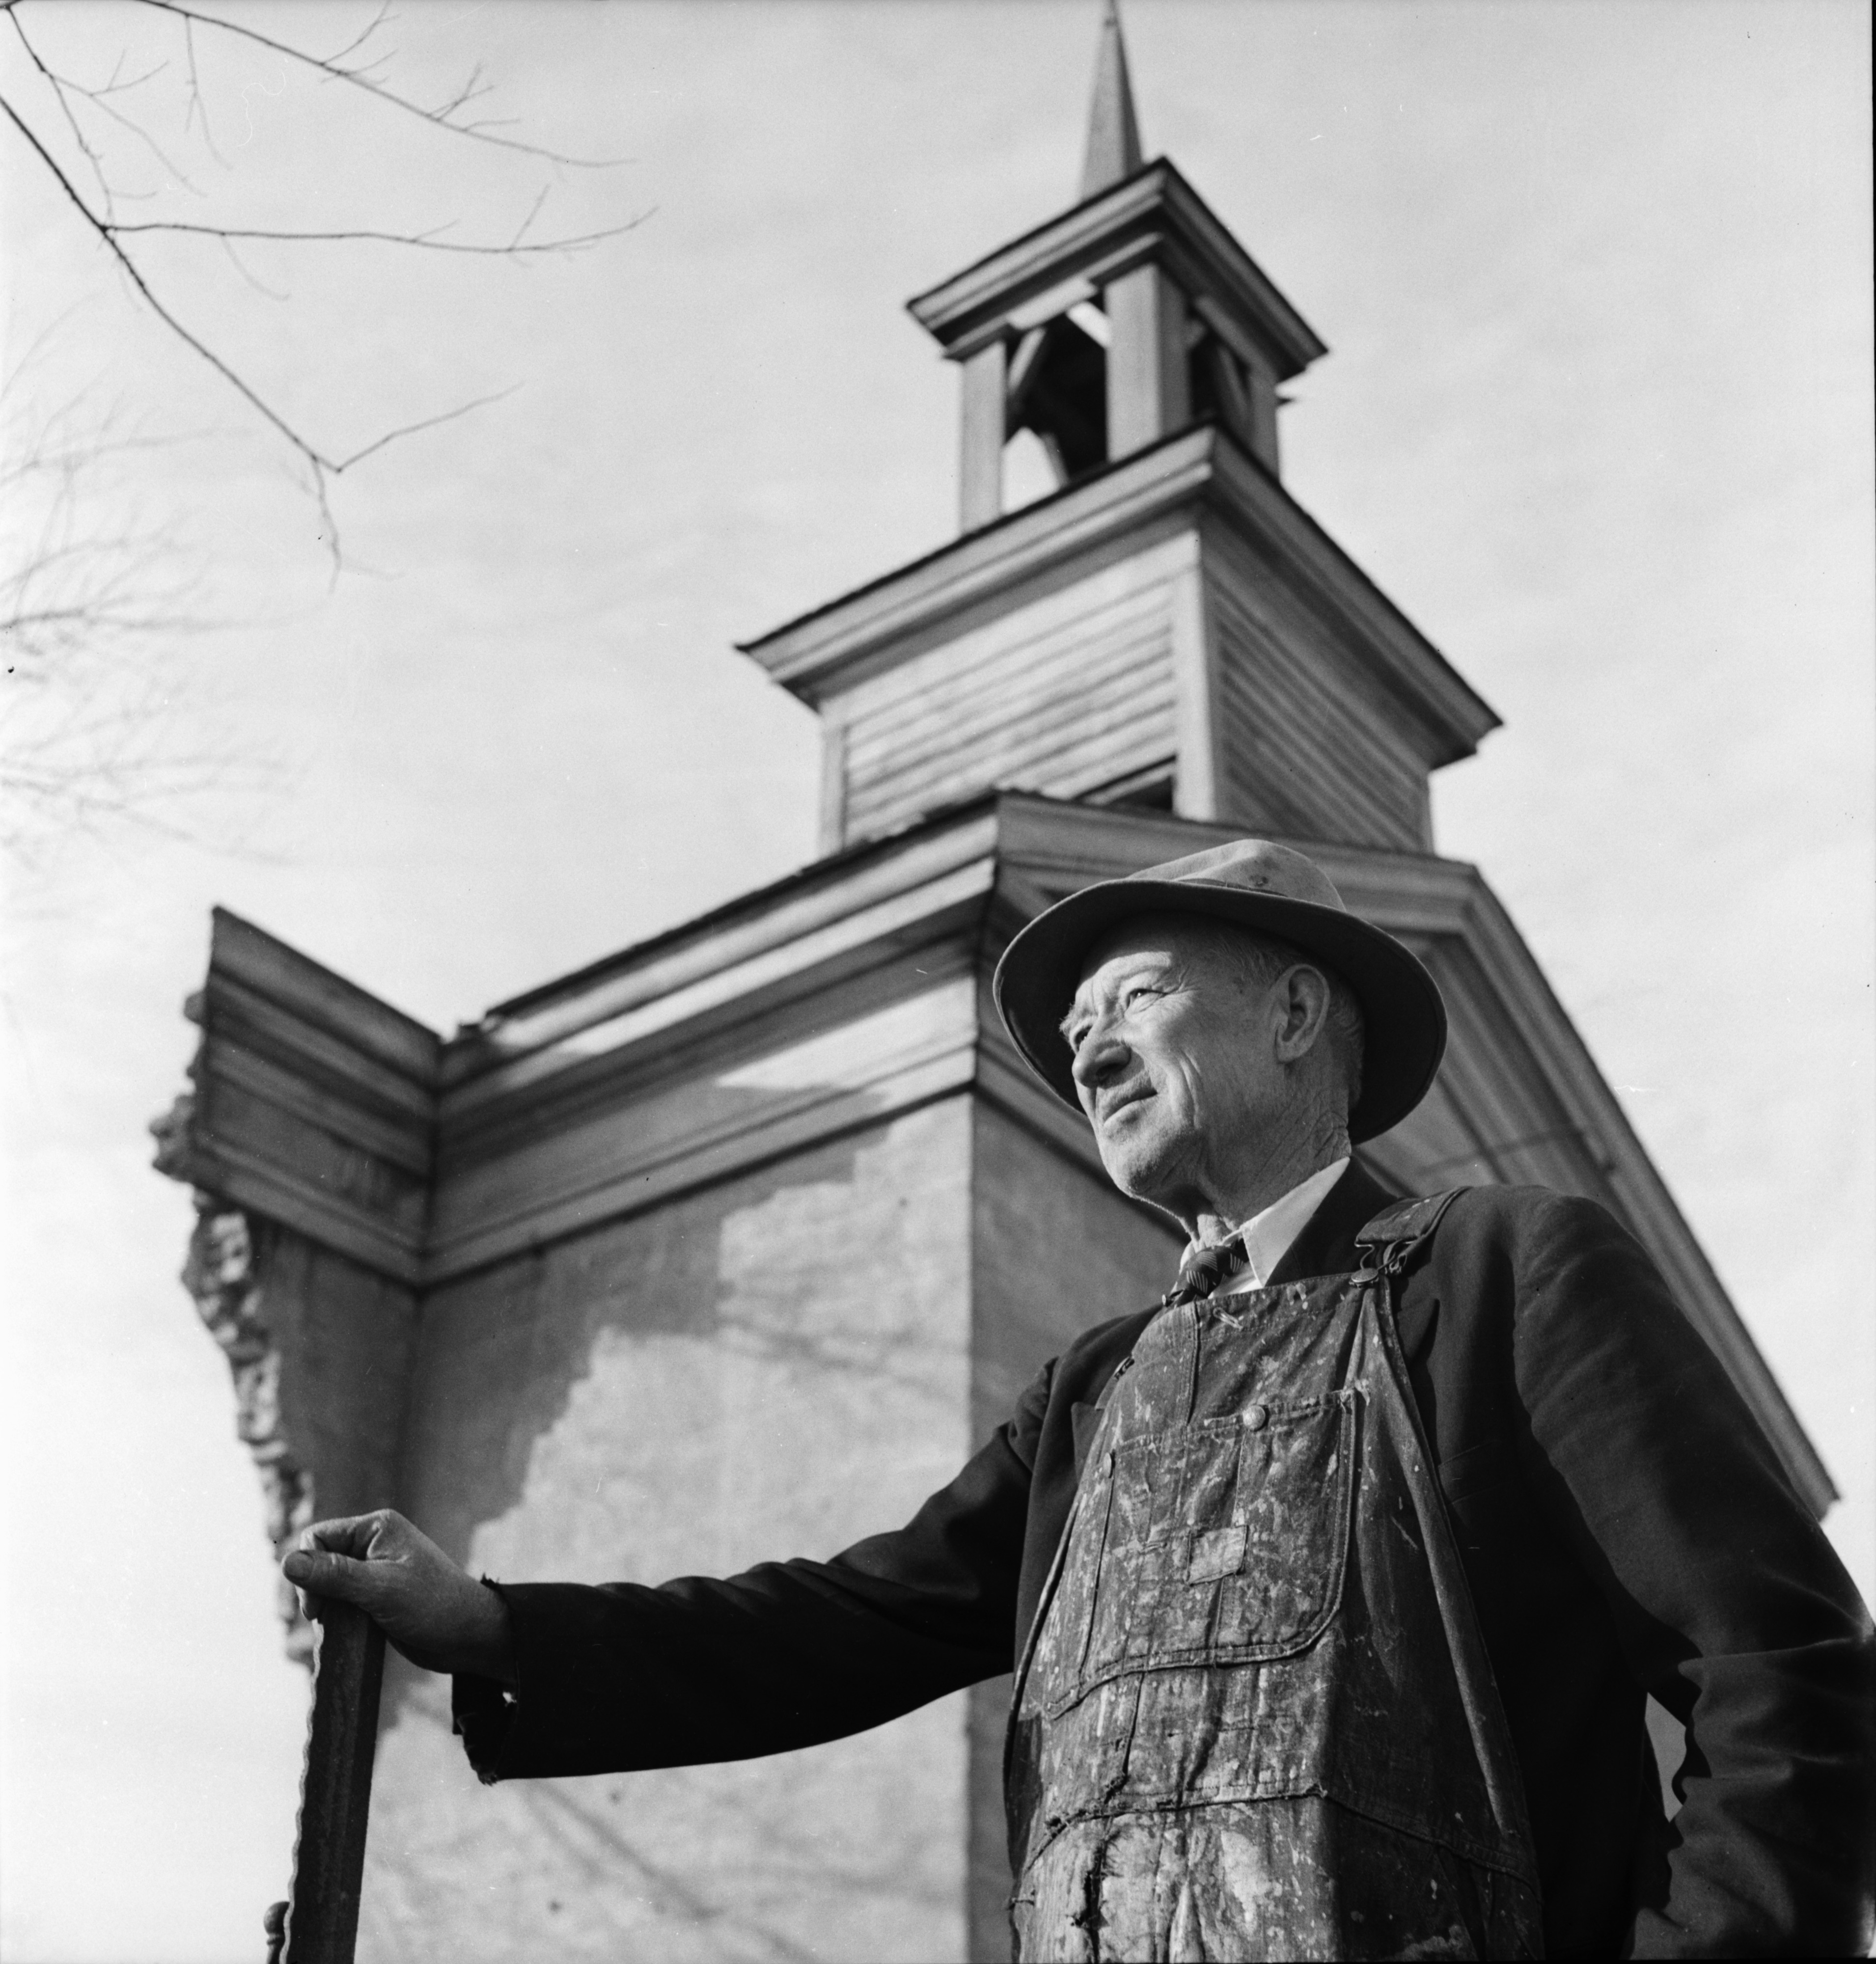 Rev. Morse, Church Builder, November 1952 image